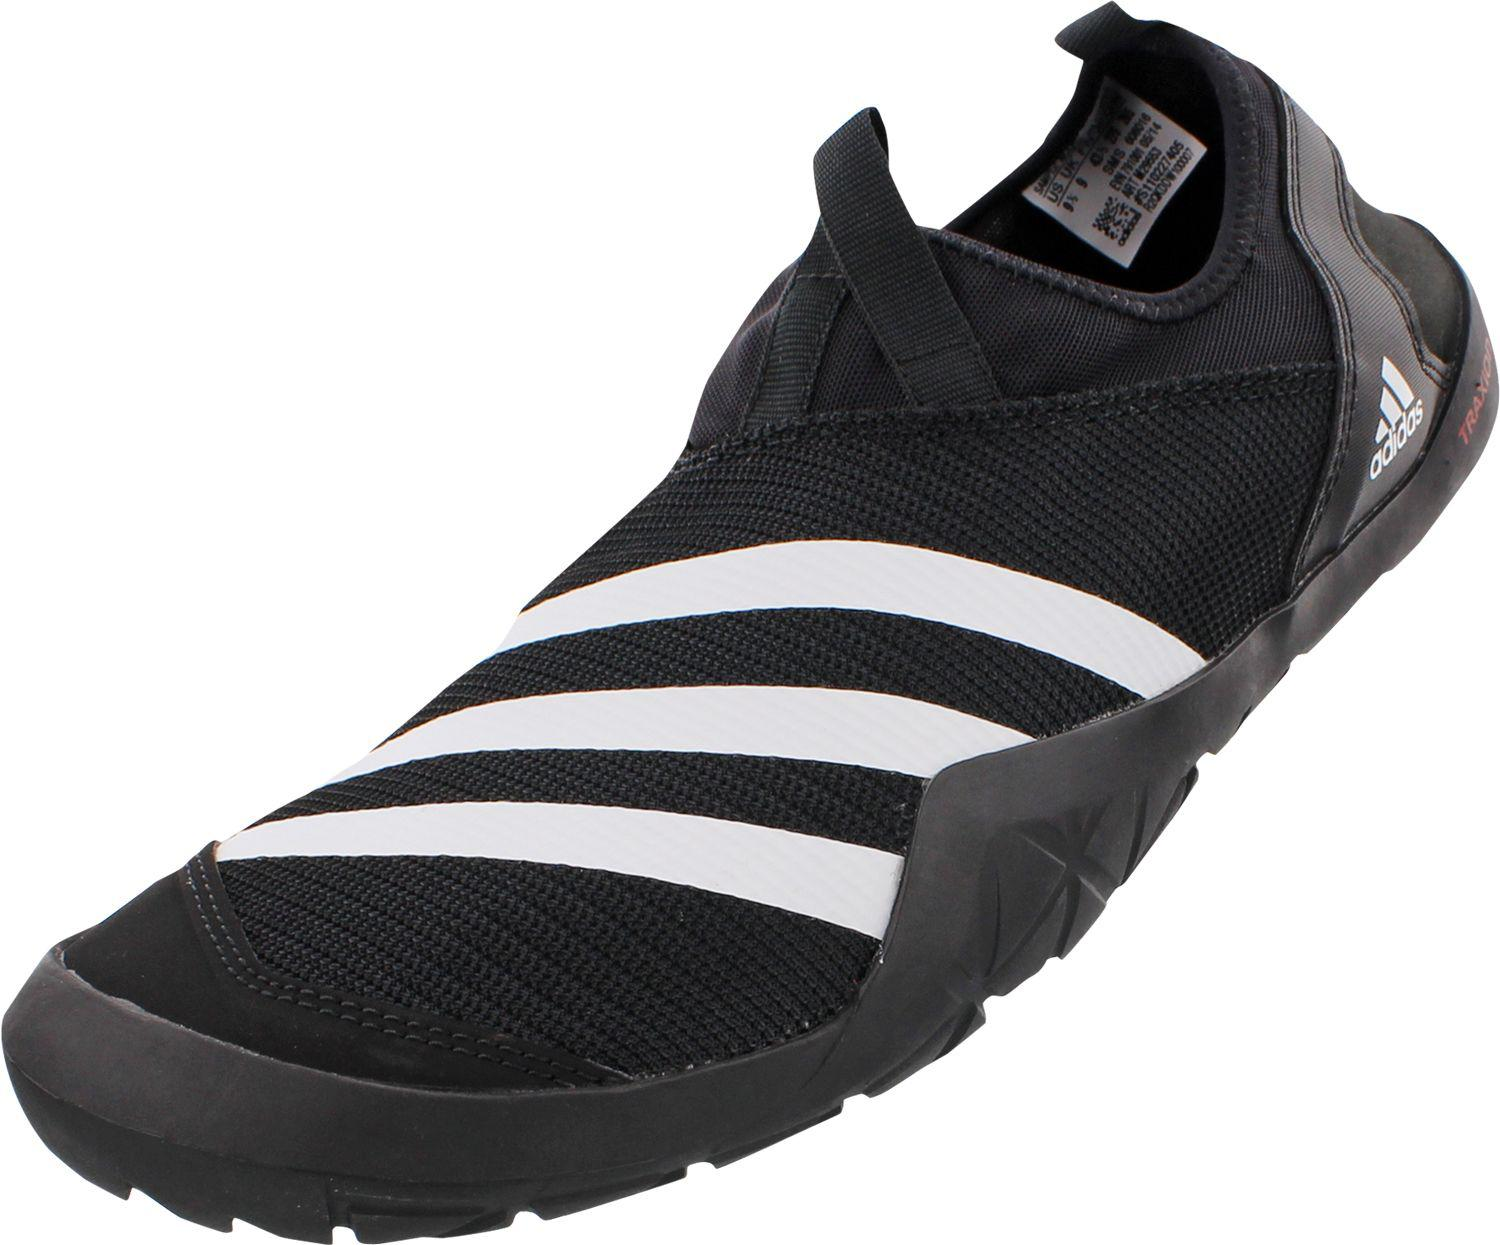 3ce9b7b83555f1 Lyst - adidas Outdoor Climacool Jawpaw Slip-on Water Shoes in Black ...